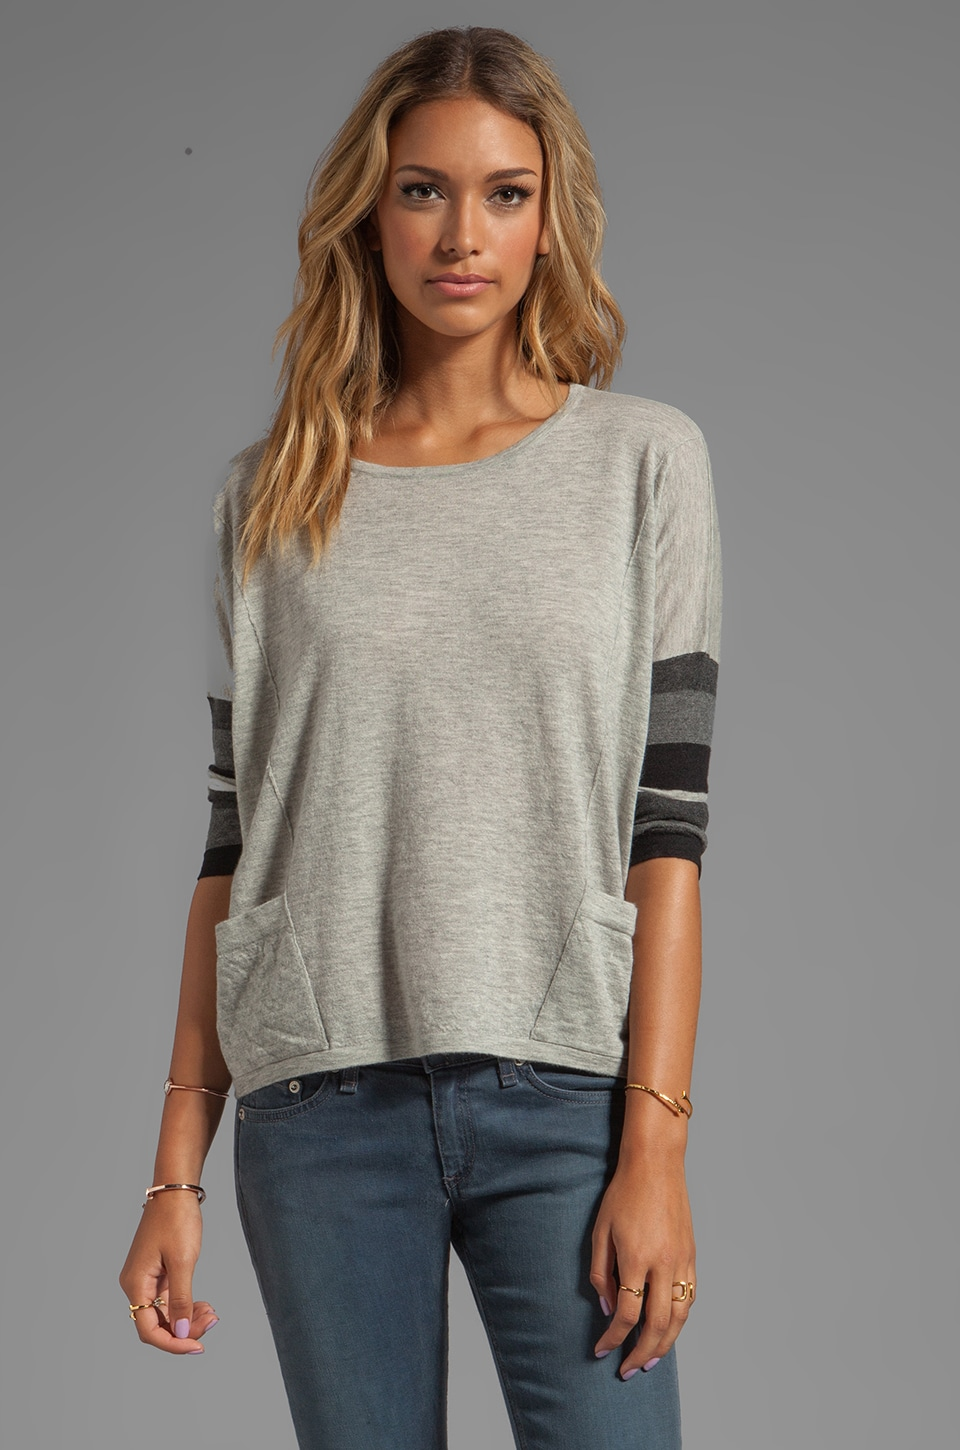 Autumn Cashmere Tissue Cashmere Boxy Striped Sleeve With Pockets Sweater in Birch/Neutrals